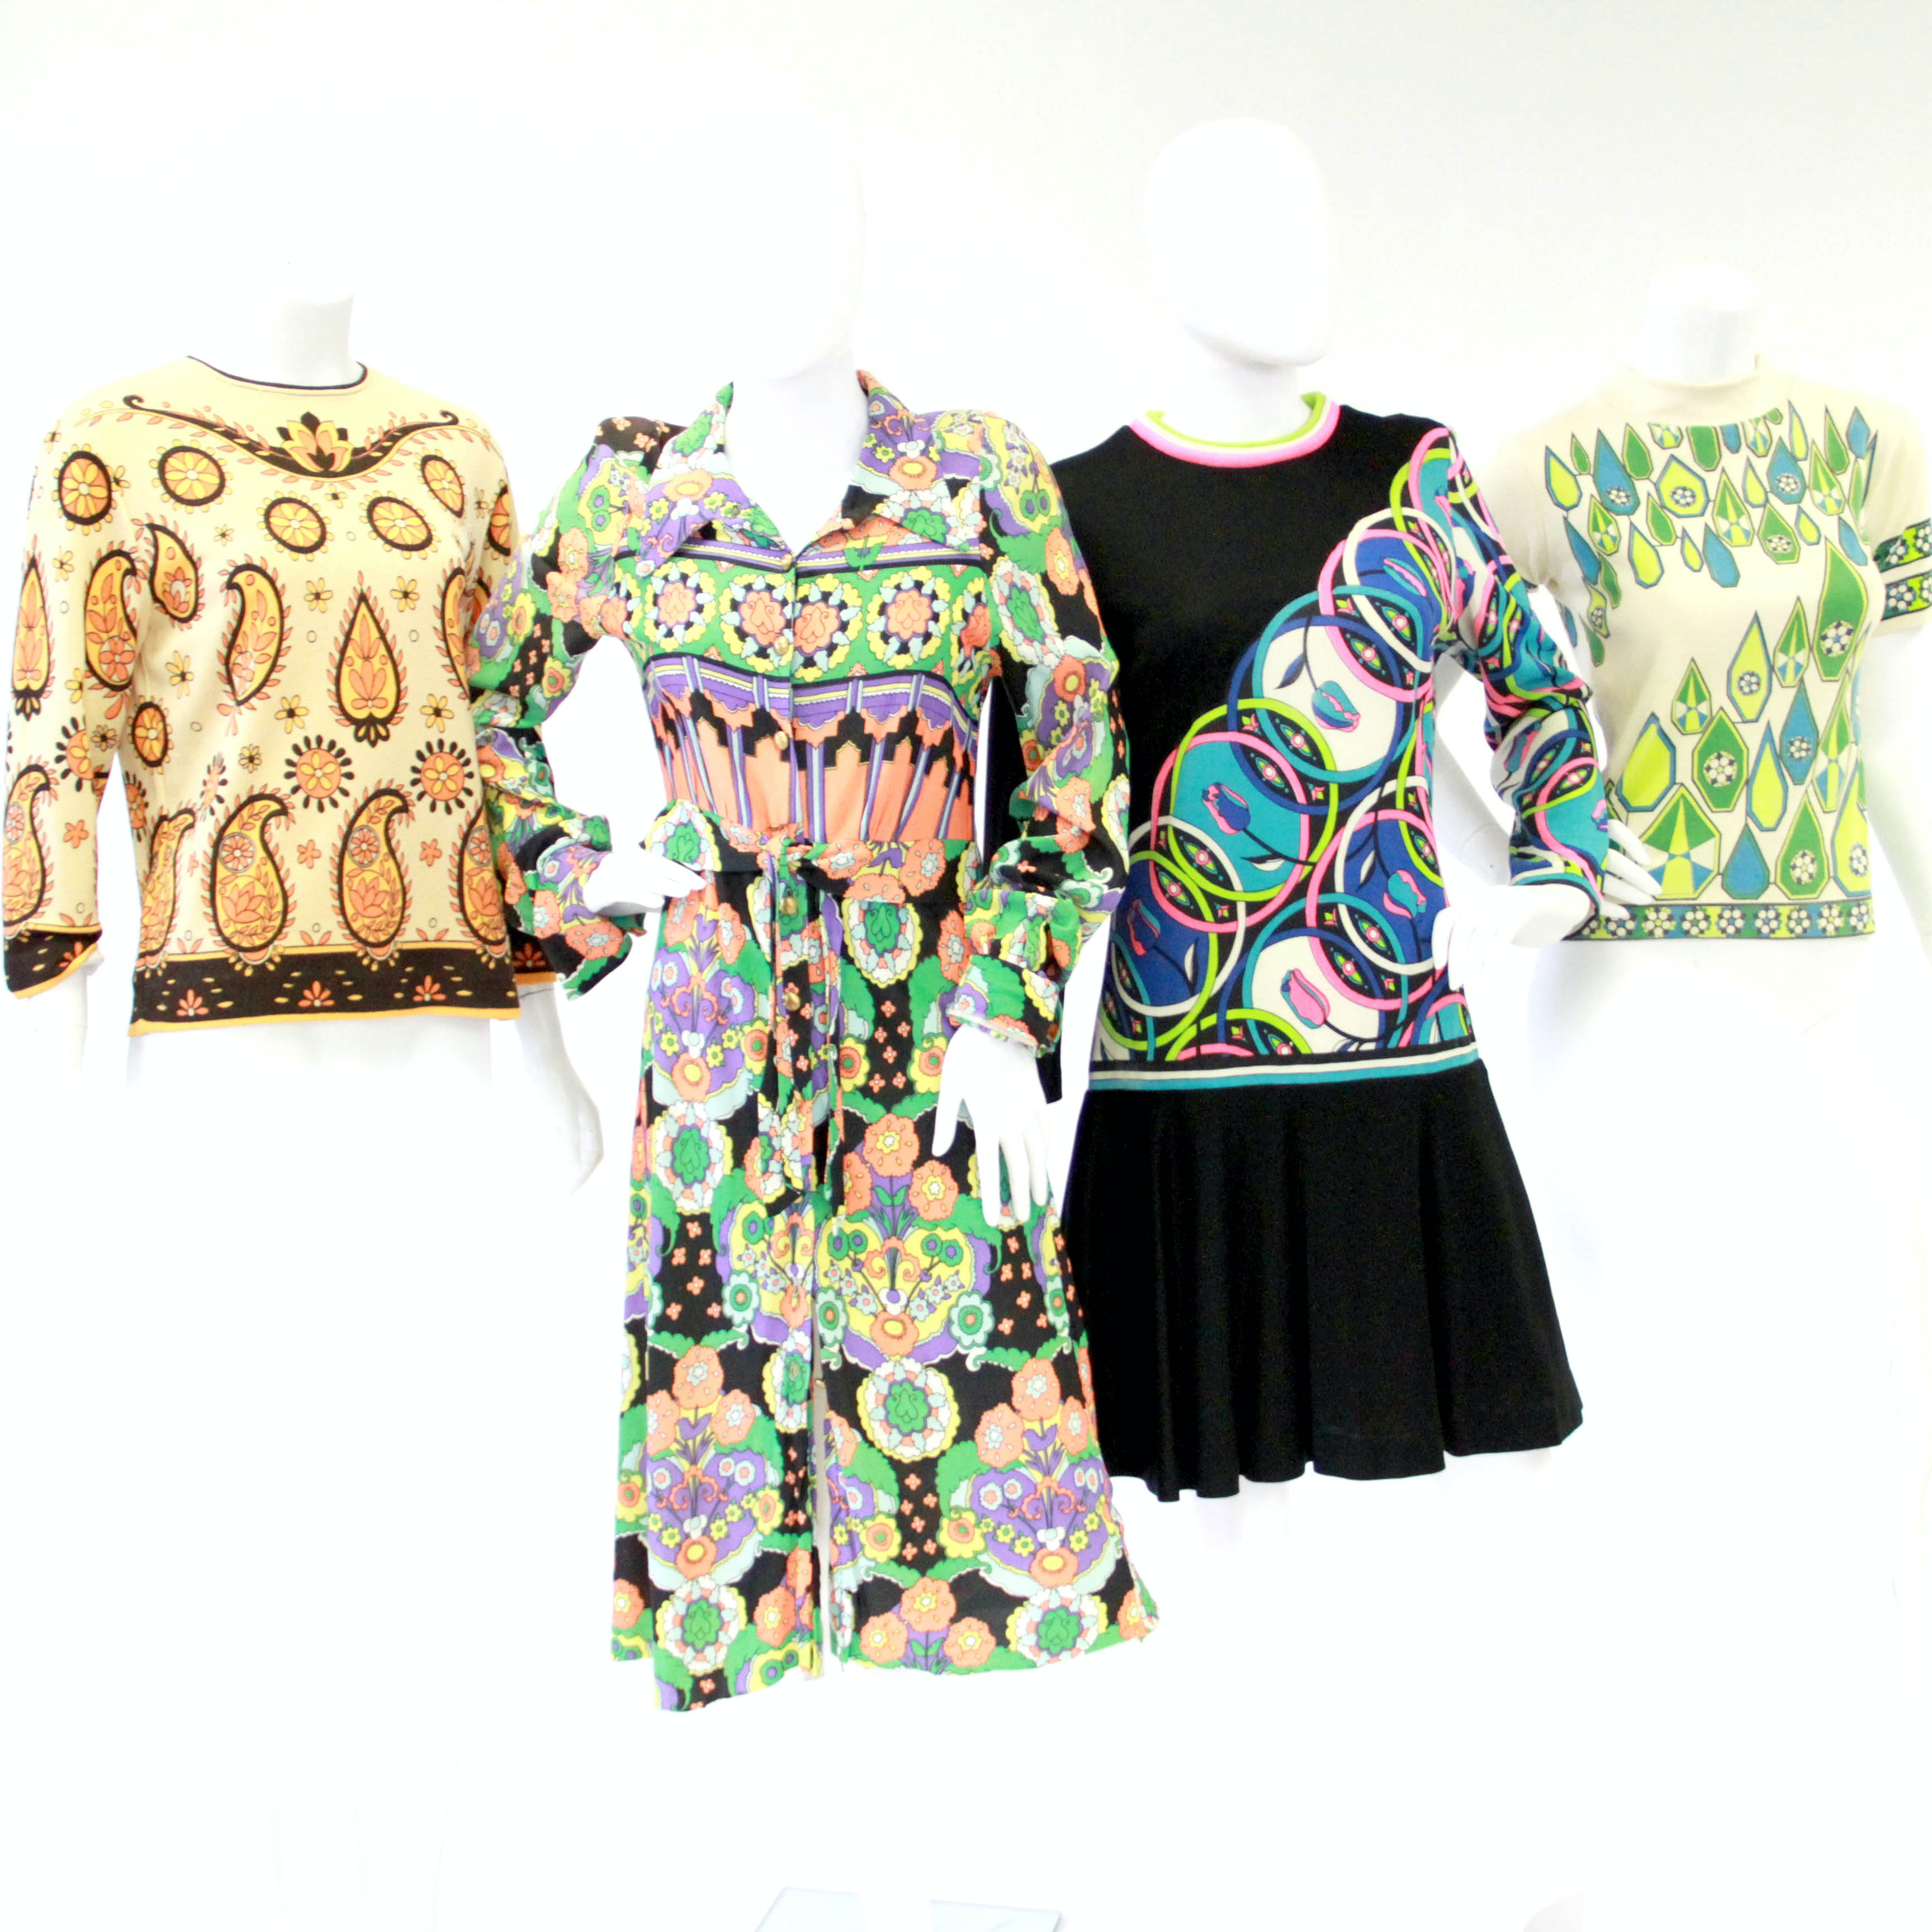 1960s Floral and Op Art Dresses and Tops Including Mr. Dino